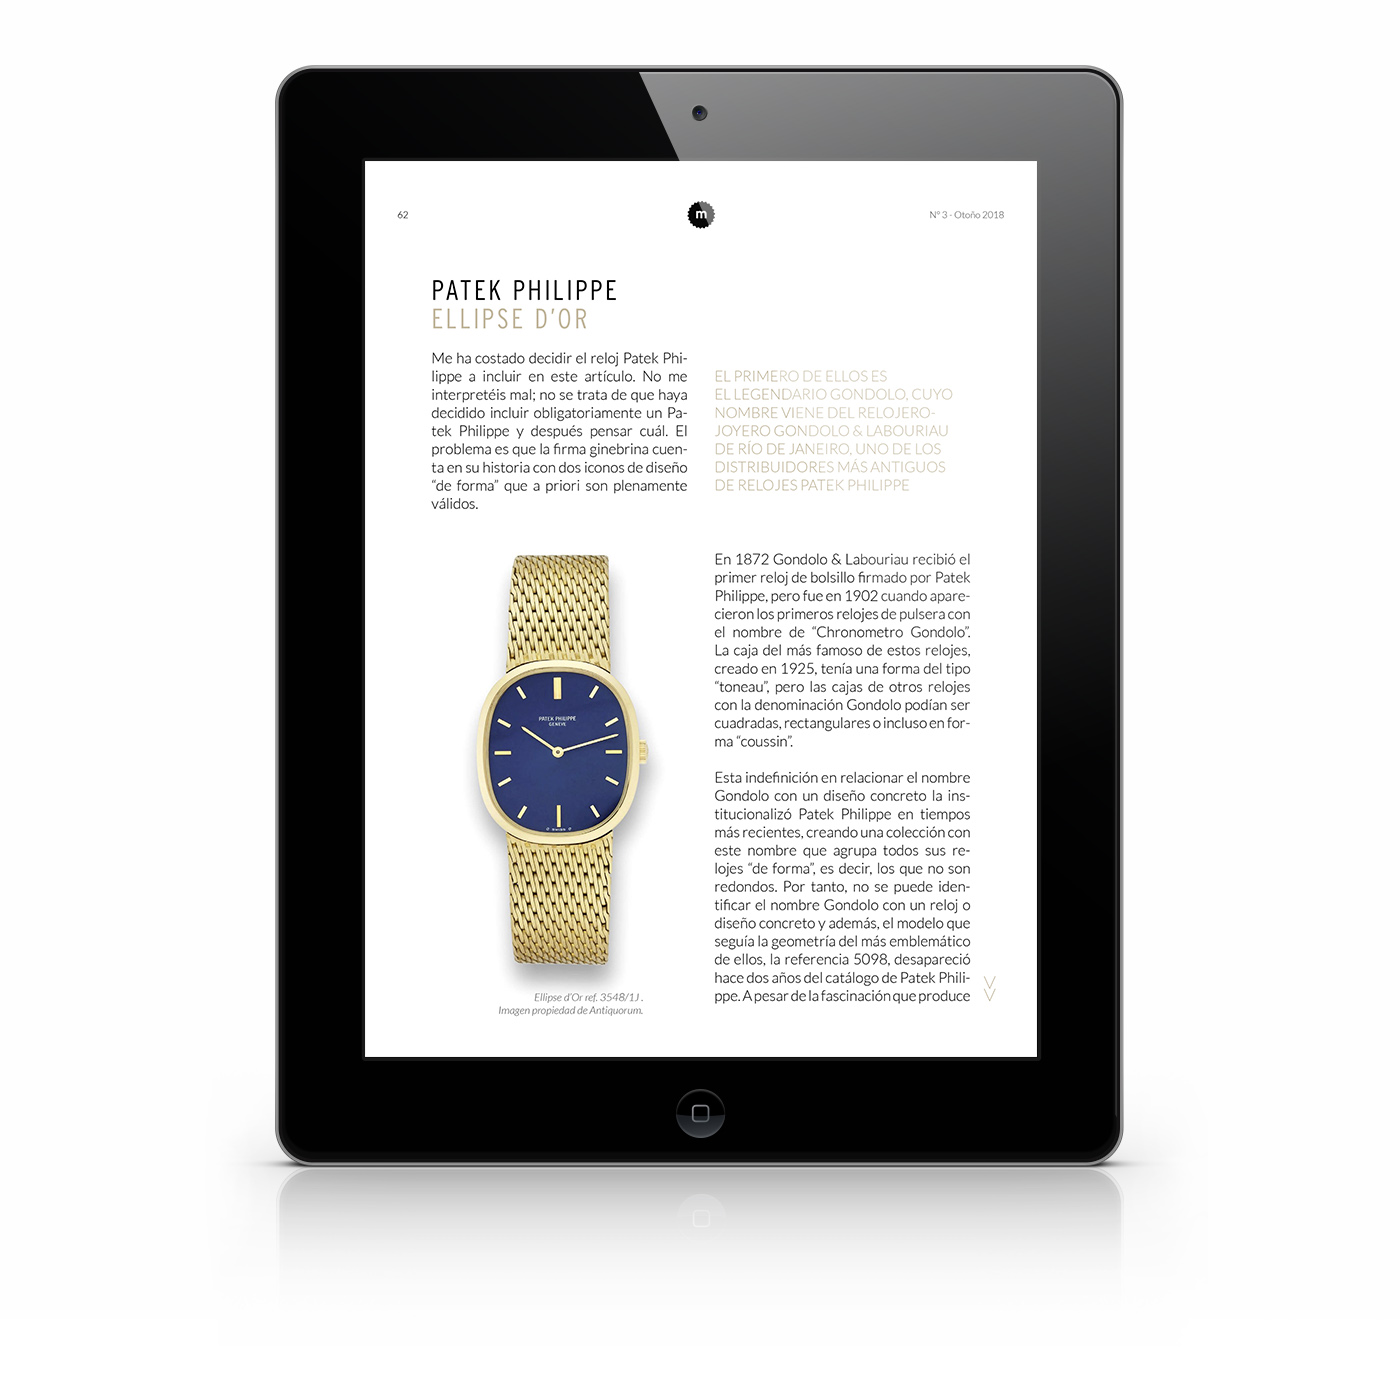 ipad-revista-digital-manufacture-ipad-disseny